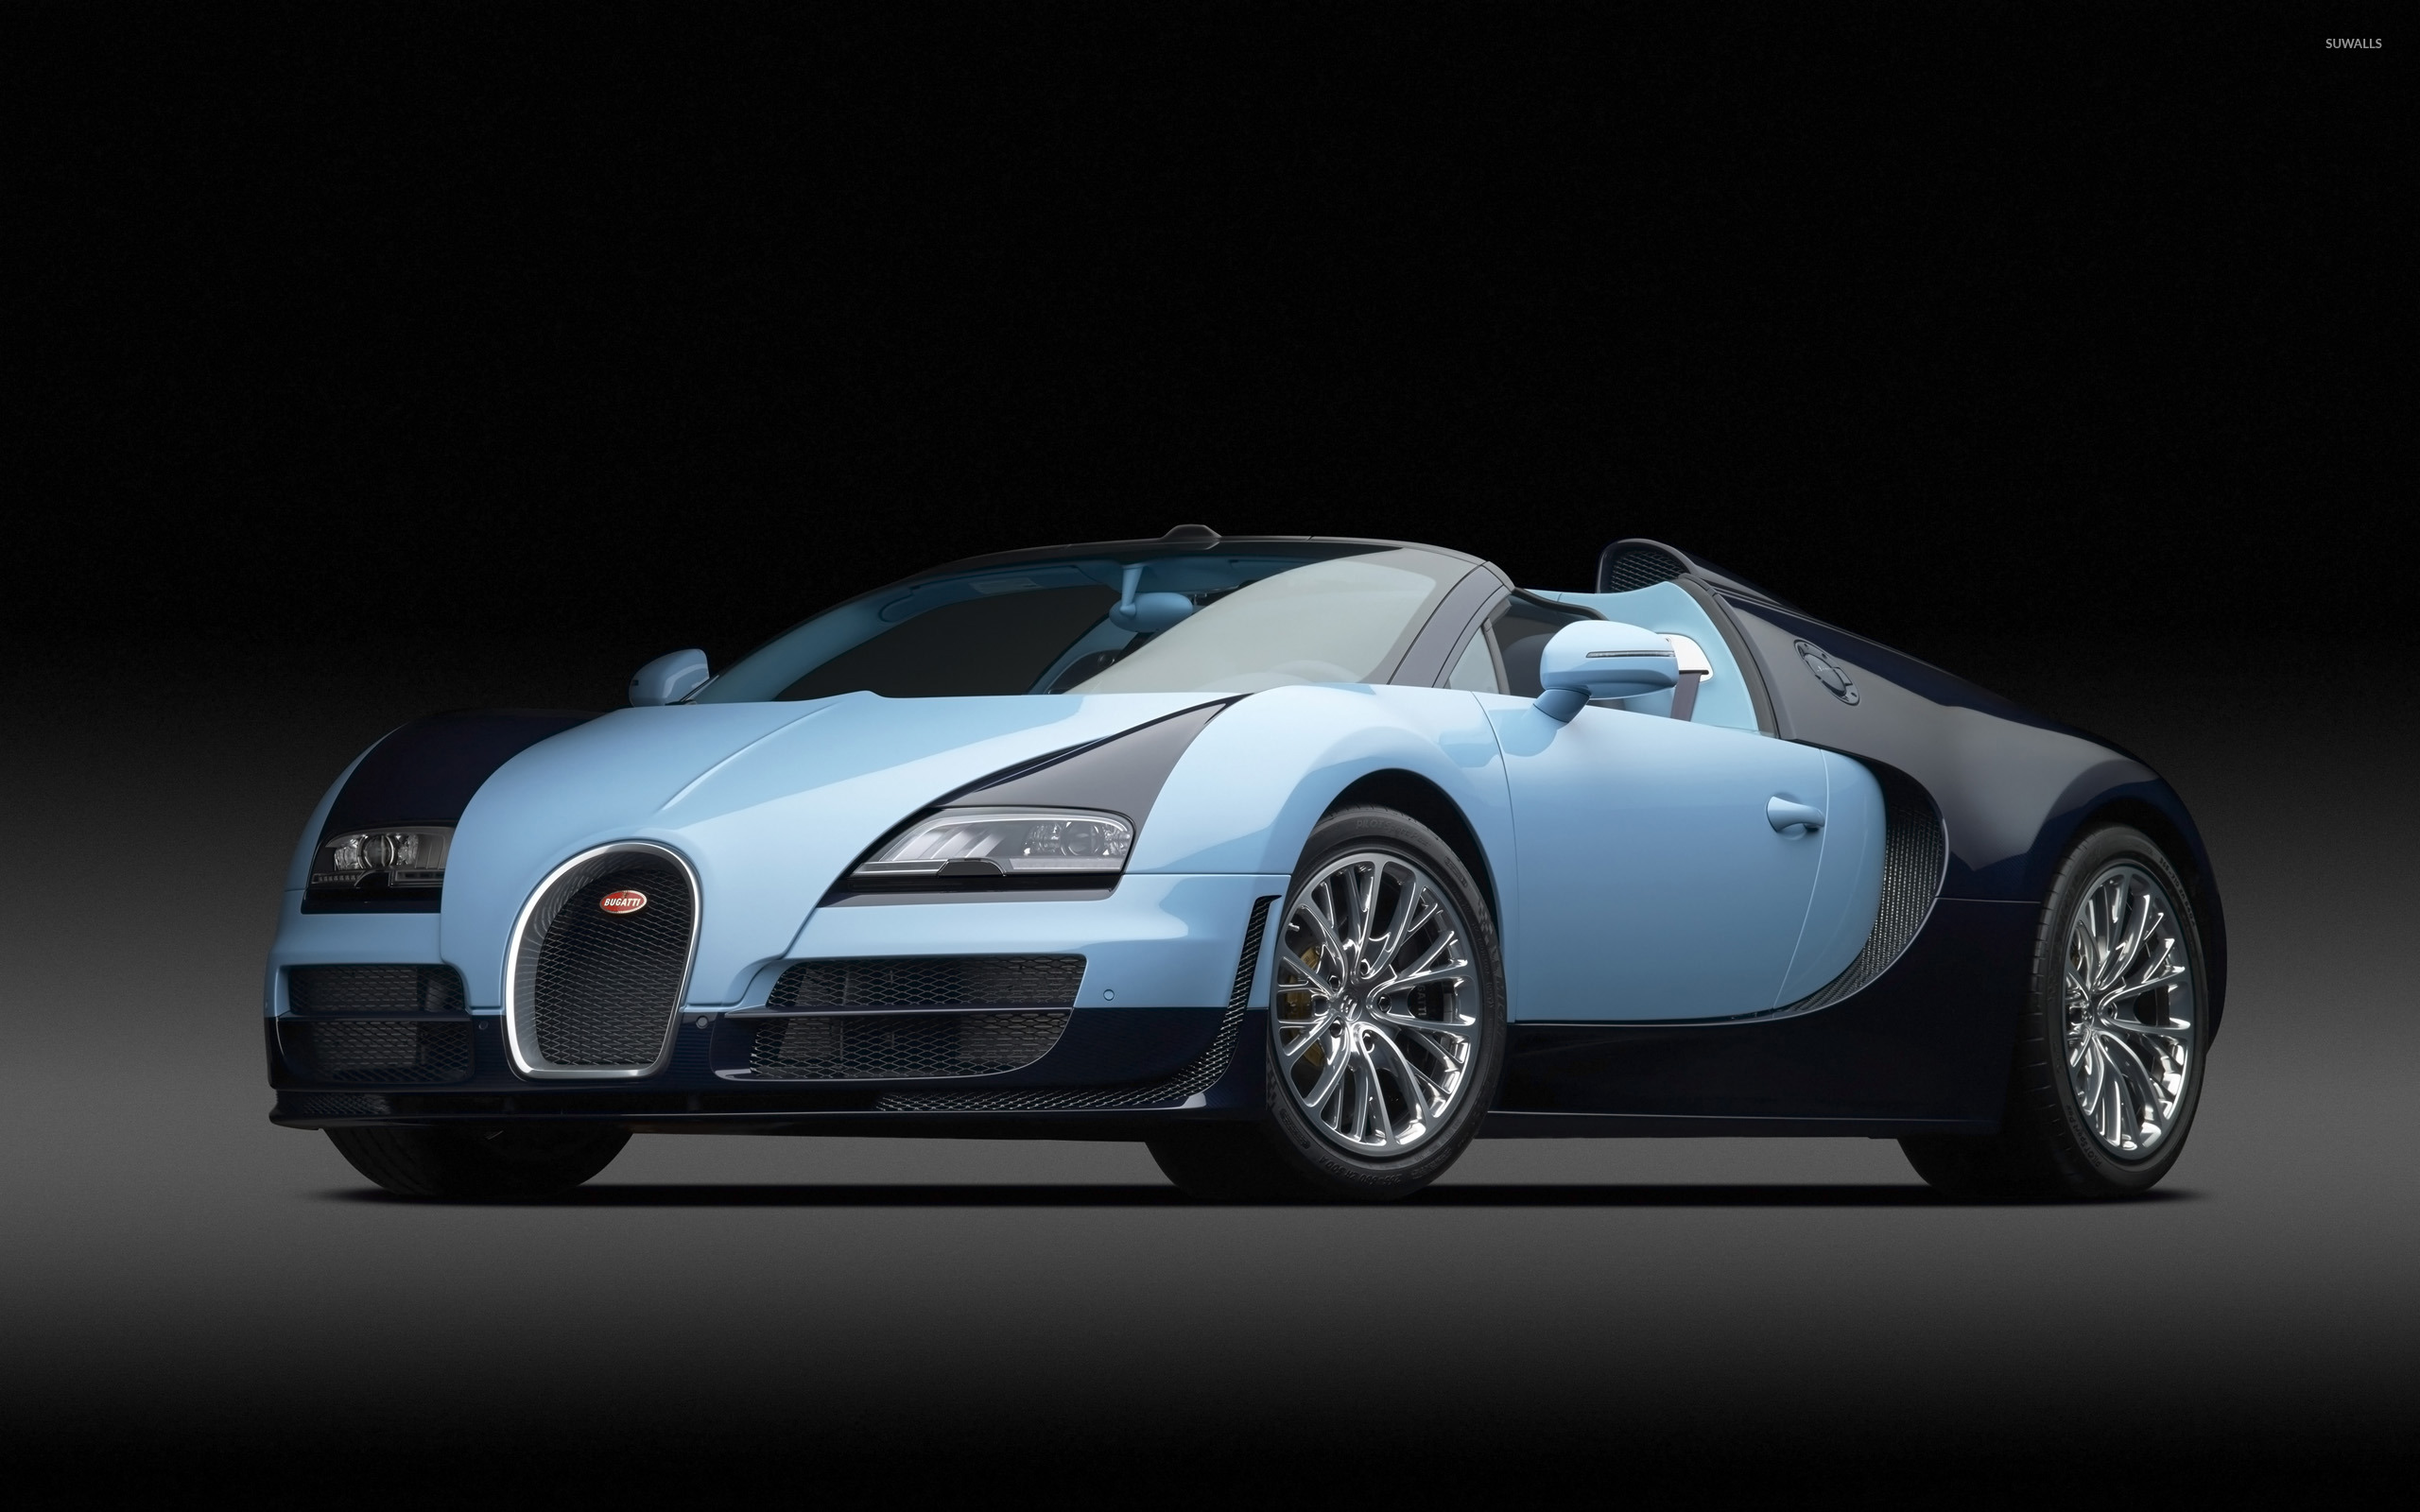 2013 bugatti veyron grand sport vitesse wallpaper car wallpapers 23034. Black Bedroom Furniture Sets. Home Design Ideas